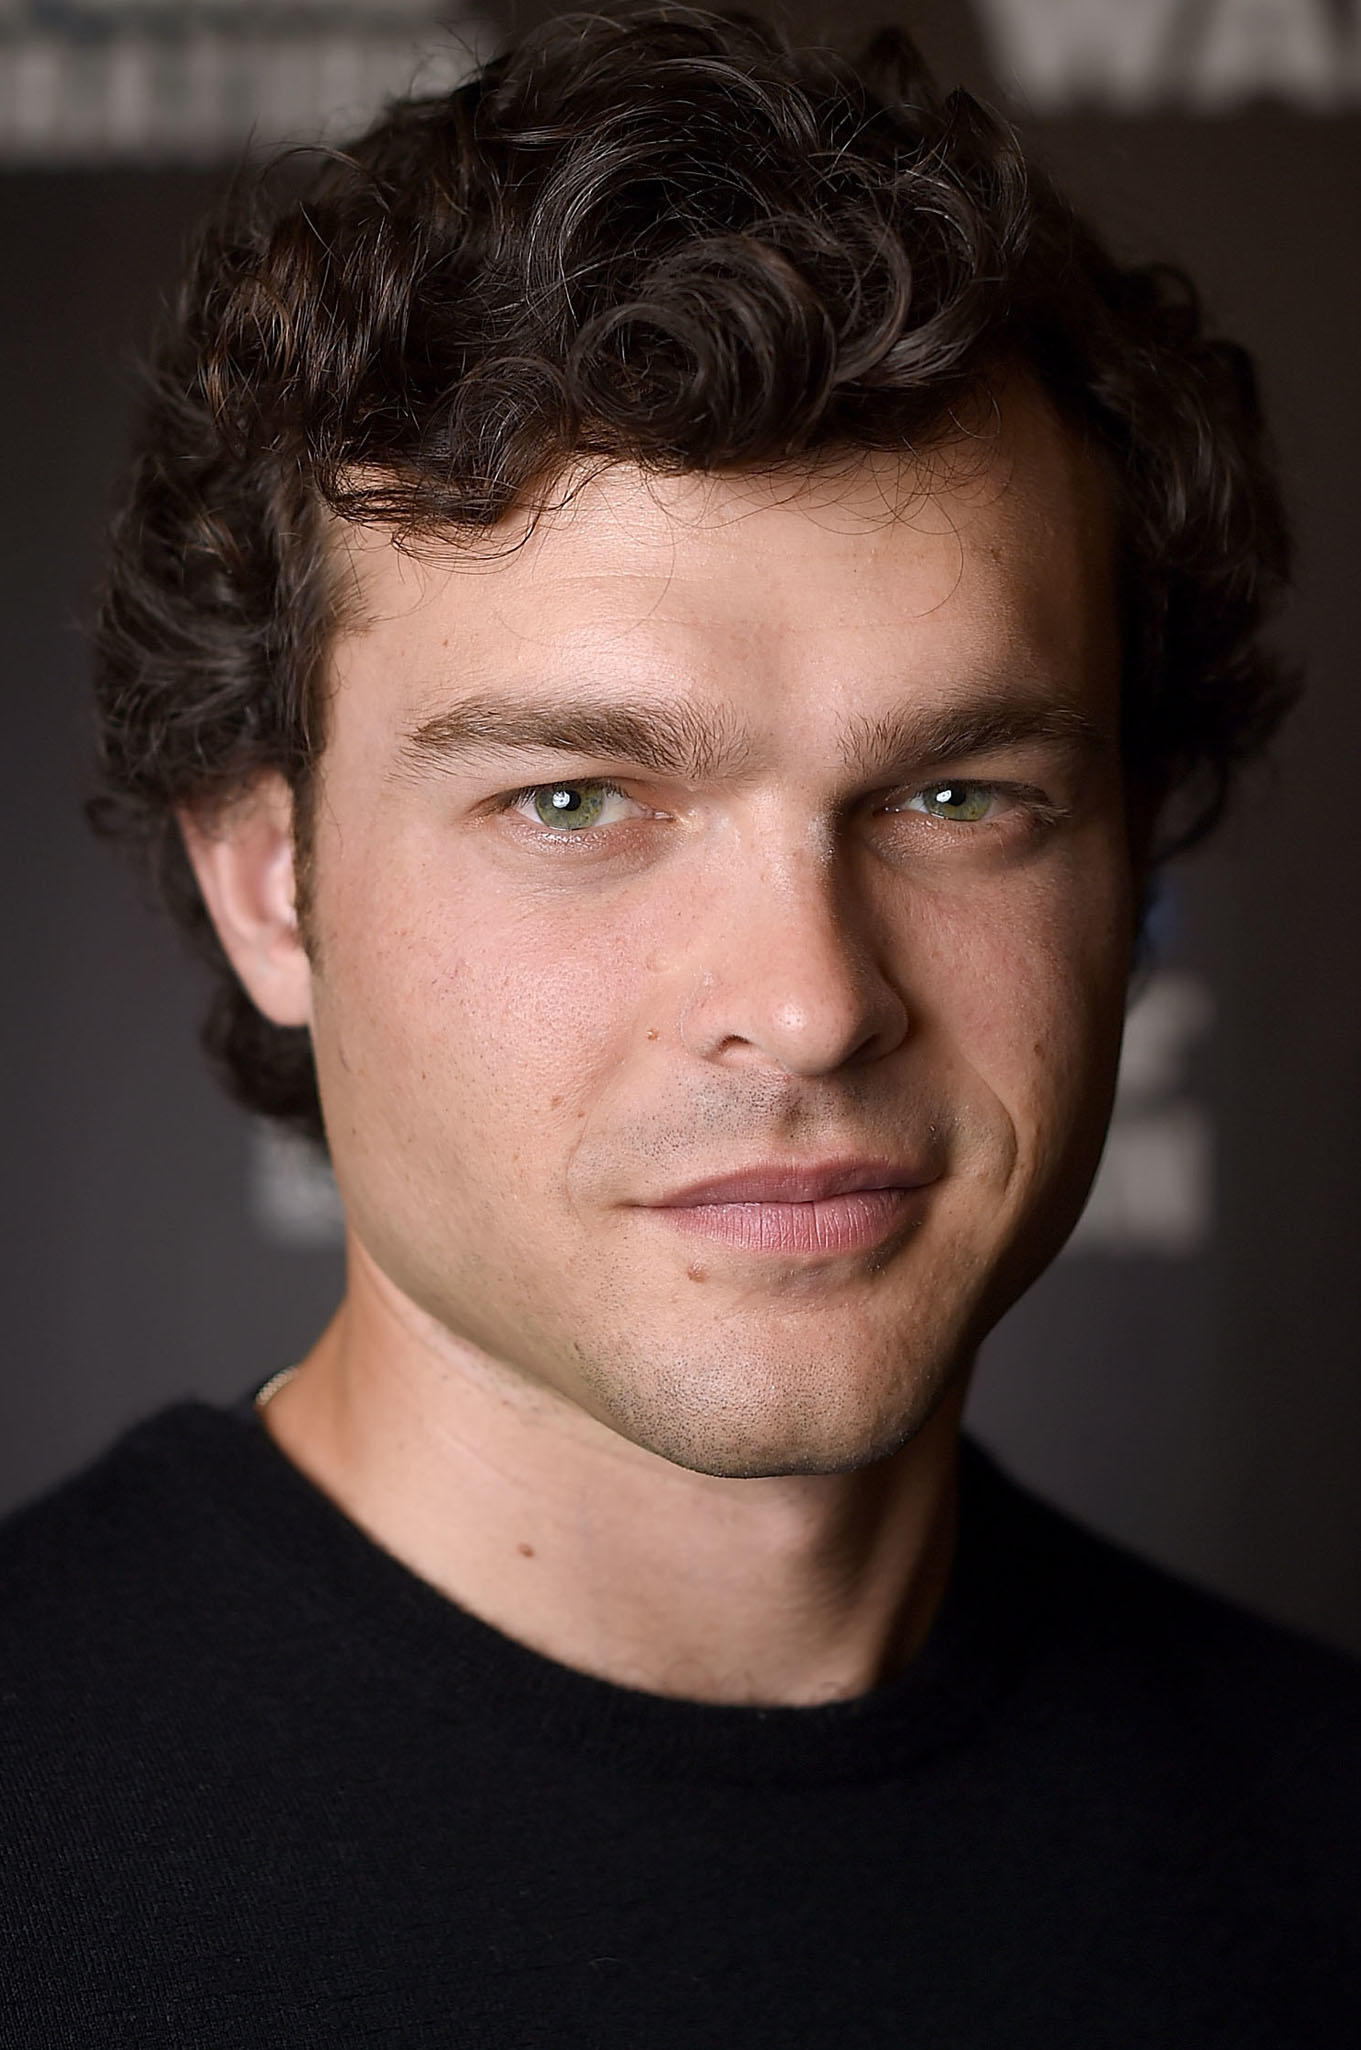 Alden Ehrenreich at Star Wars Celebration 2016 in London.